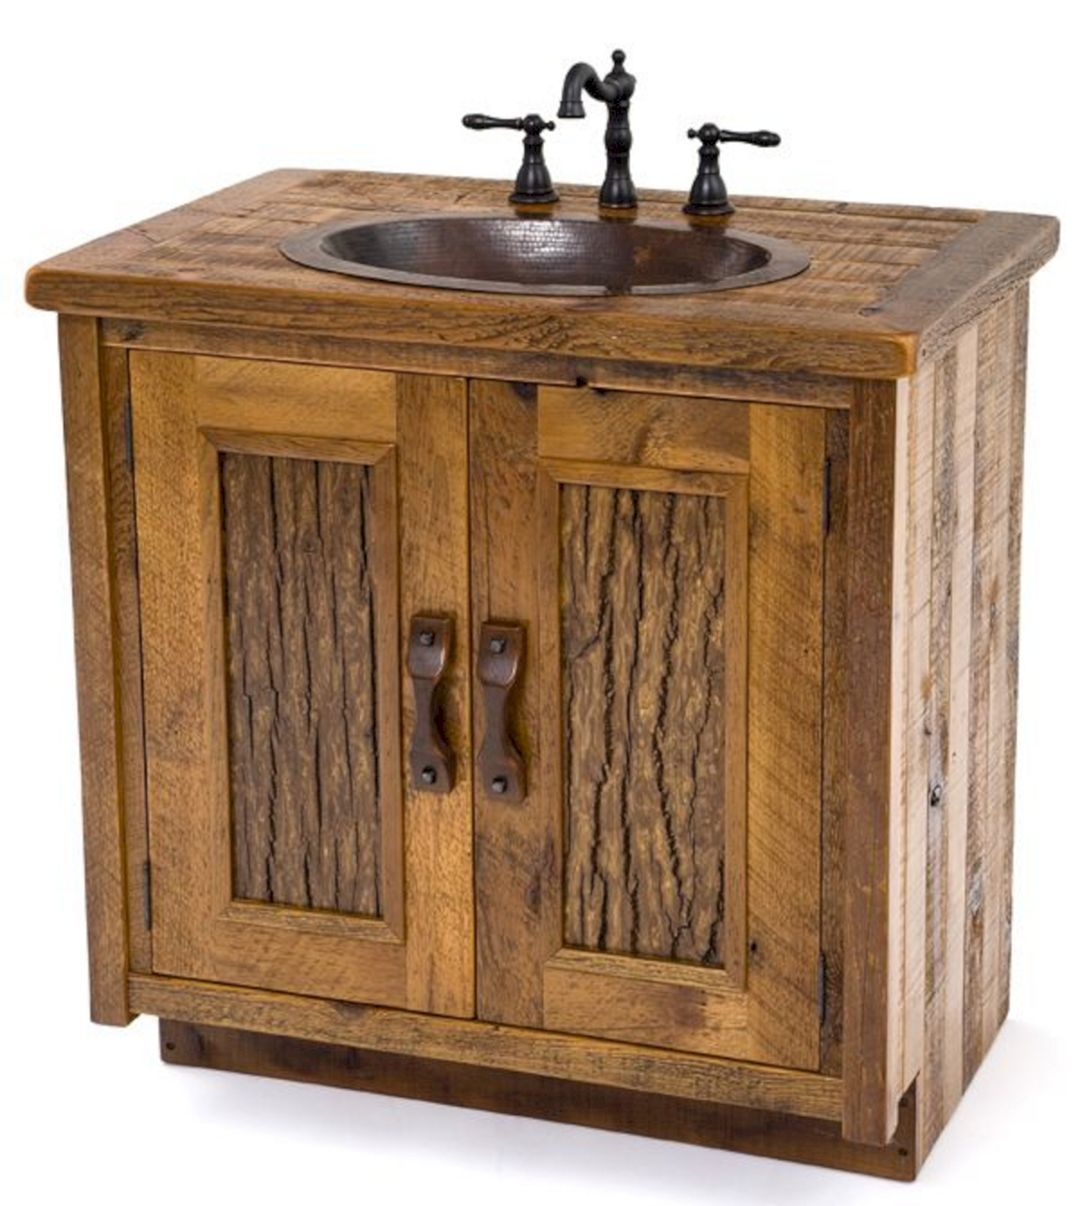 8 Amazing And Unique Bathroom Barnwood Design Ideas Freshouz Com Rustic Bathroom Vanities Rustic Kitchen Cabinets Rustic Vanity